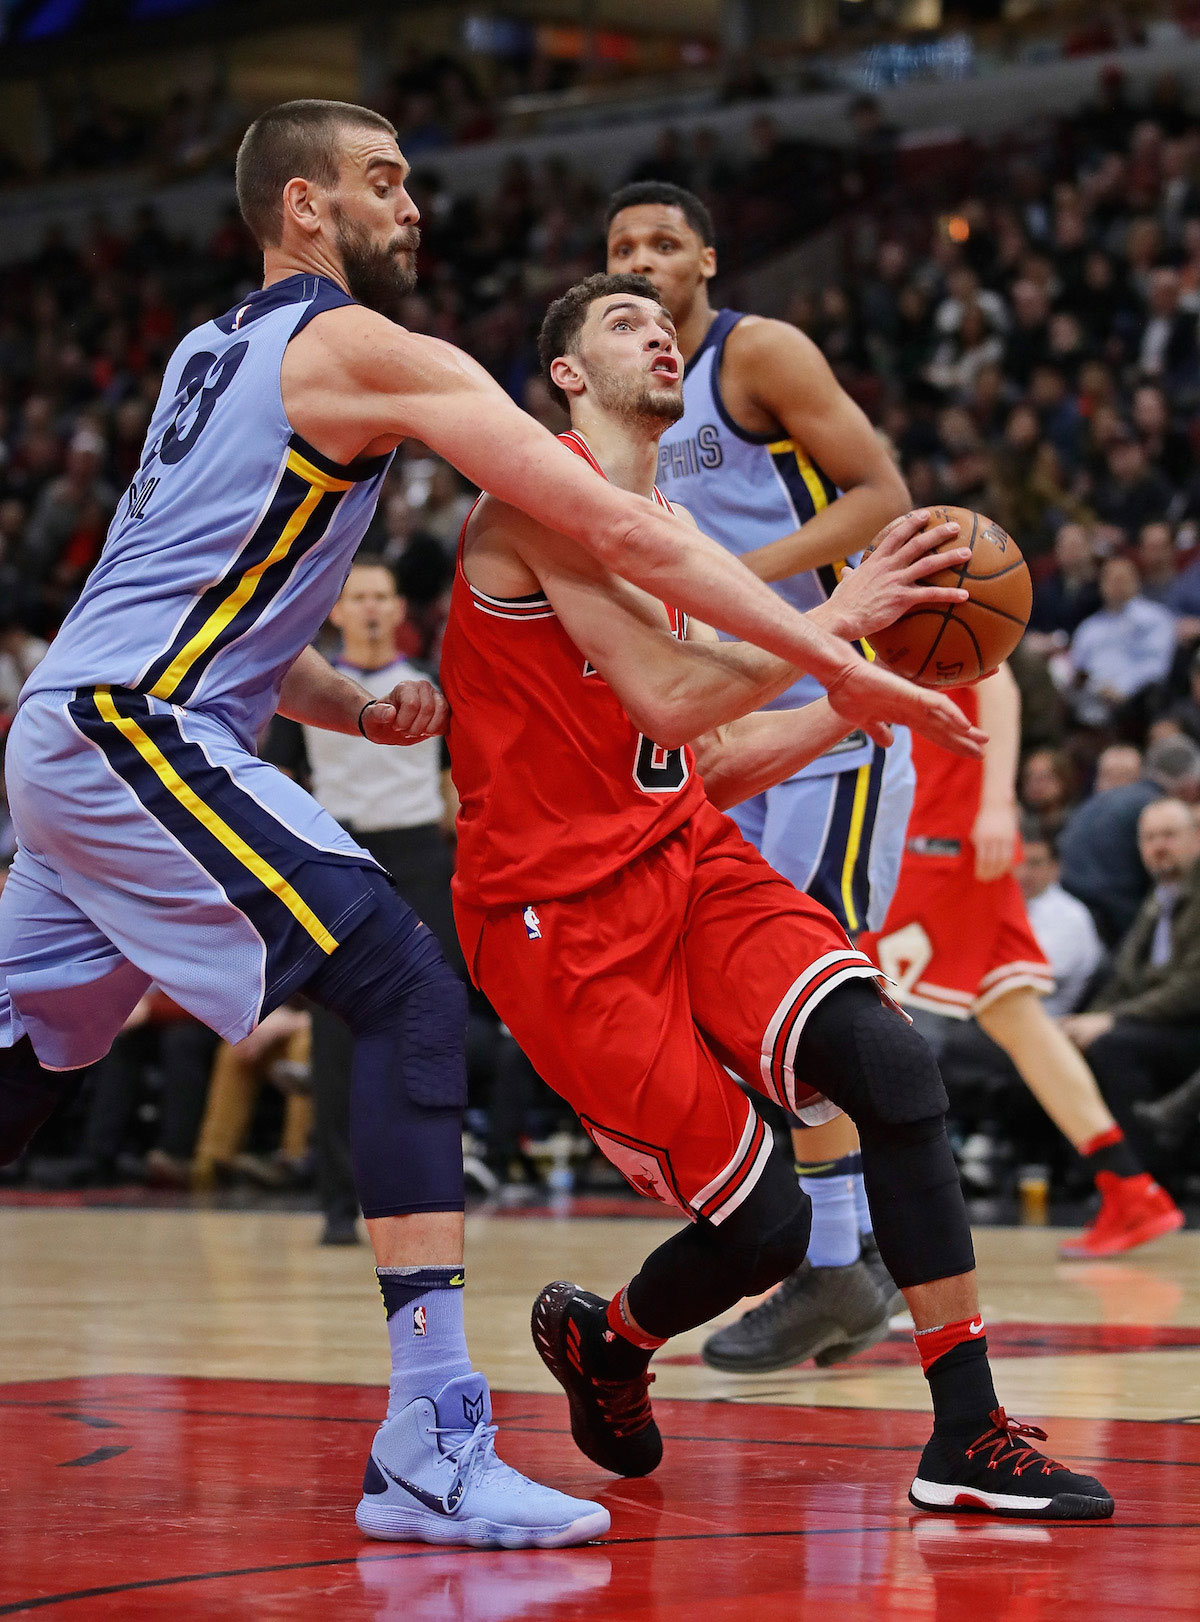 Zach LaVine #8 of the Chicago Bulls drives against Marc Gasol #33 of the Memphis Grizzlies